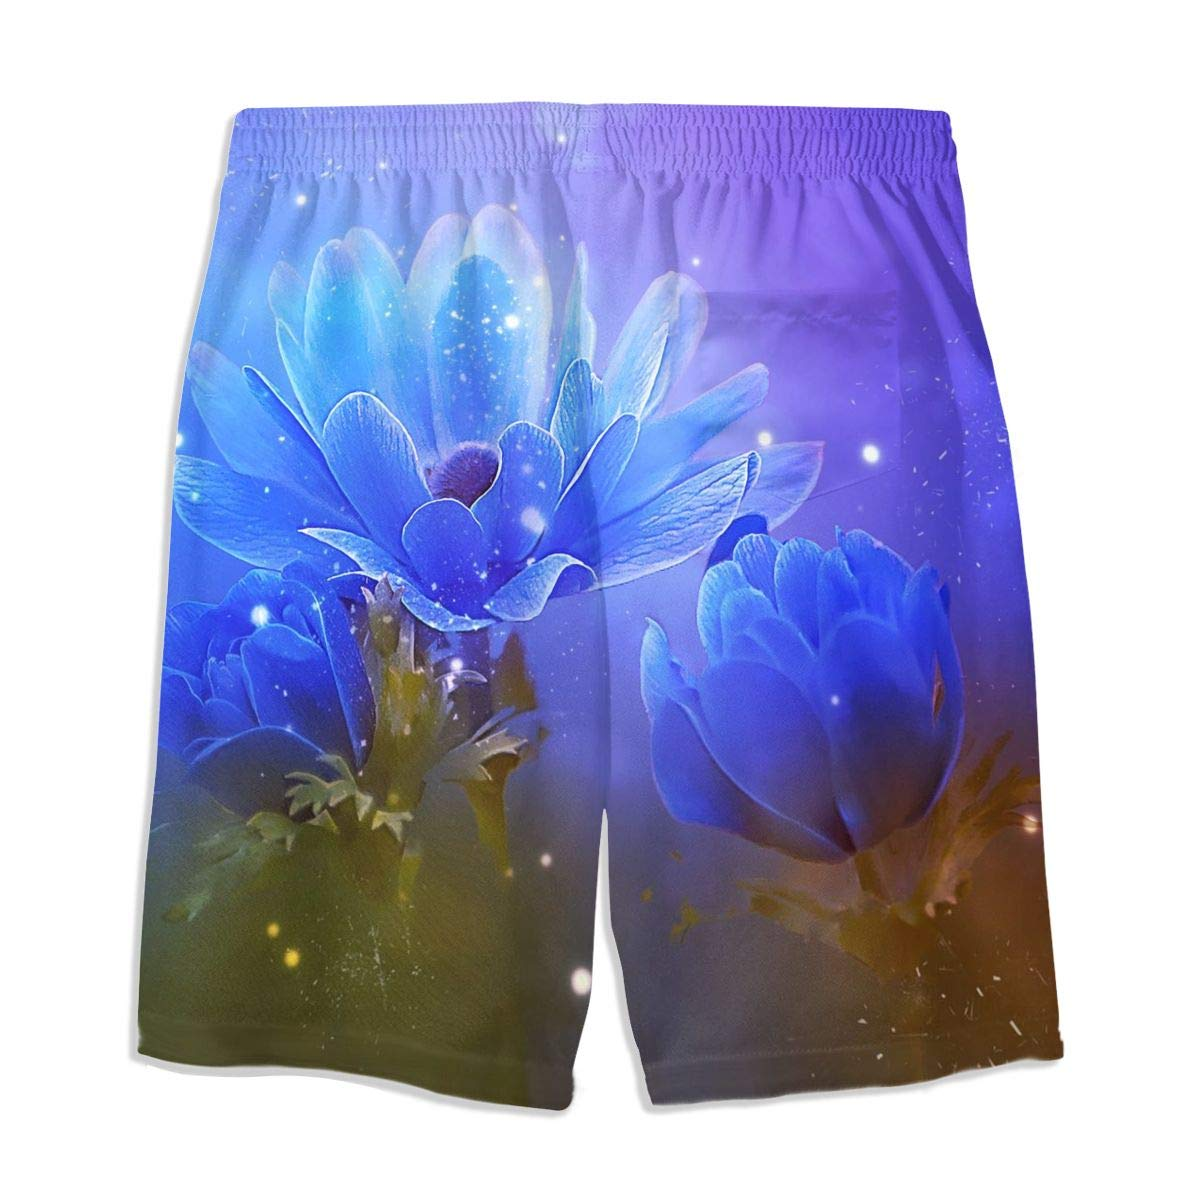 Rigg-pants Boys Comfortable Hawaii Beach Mountaineering Funny Beach Shorts Swim Trunks Board Shorts